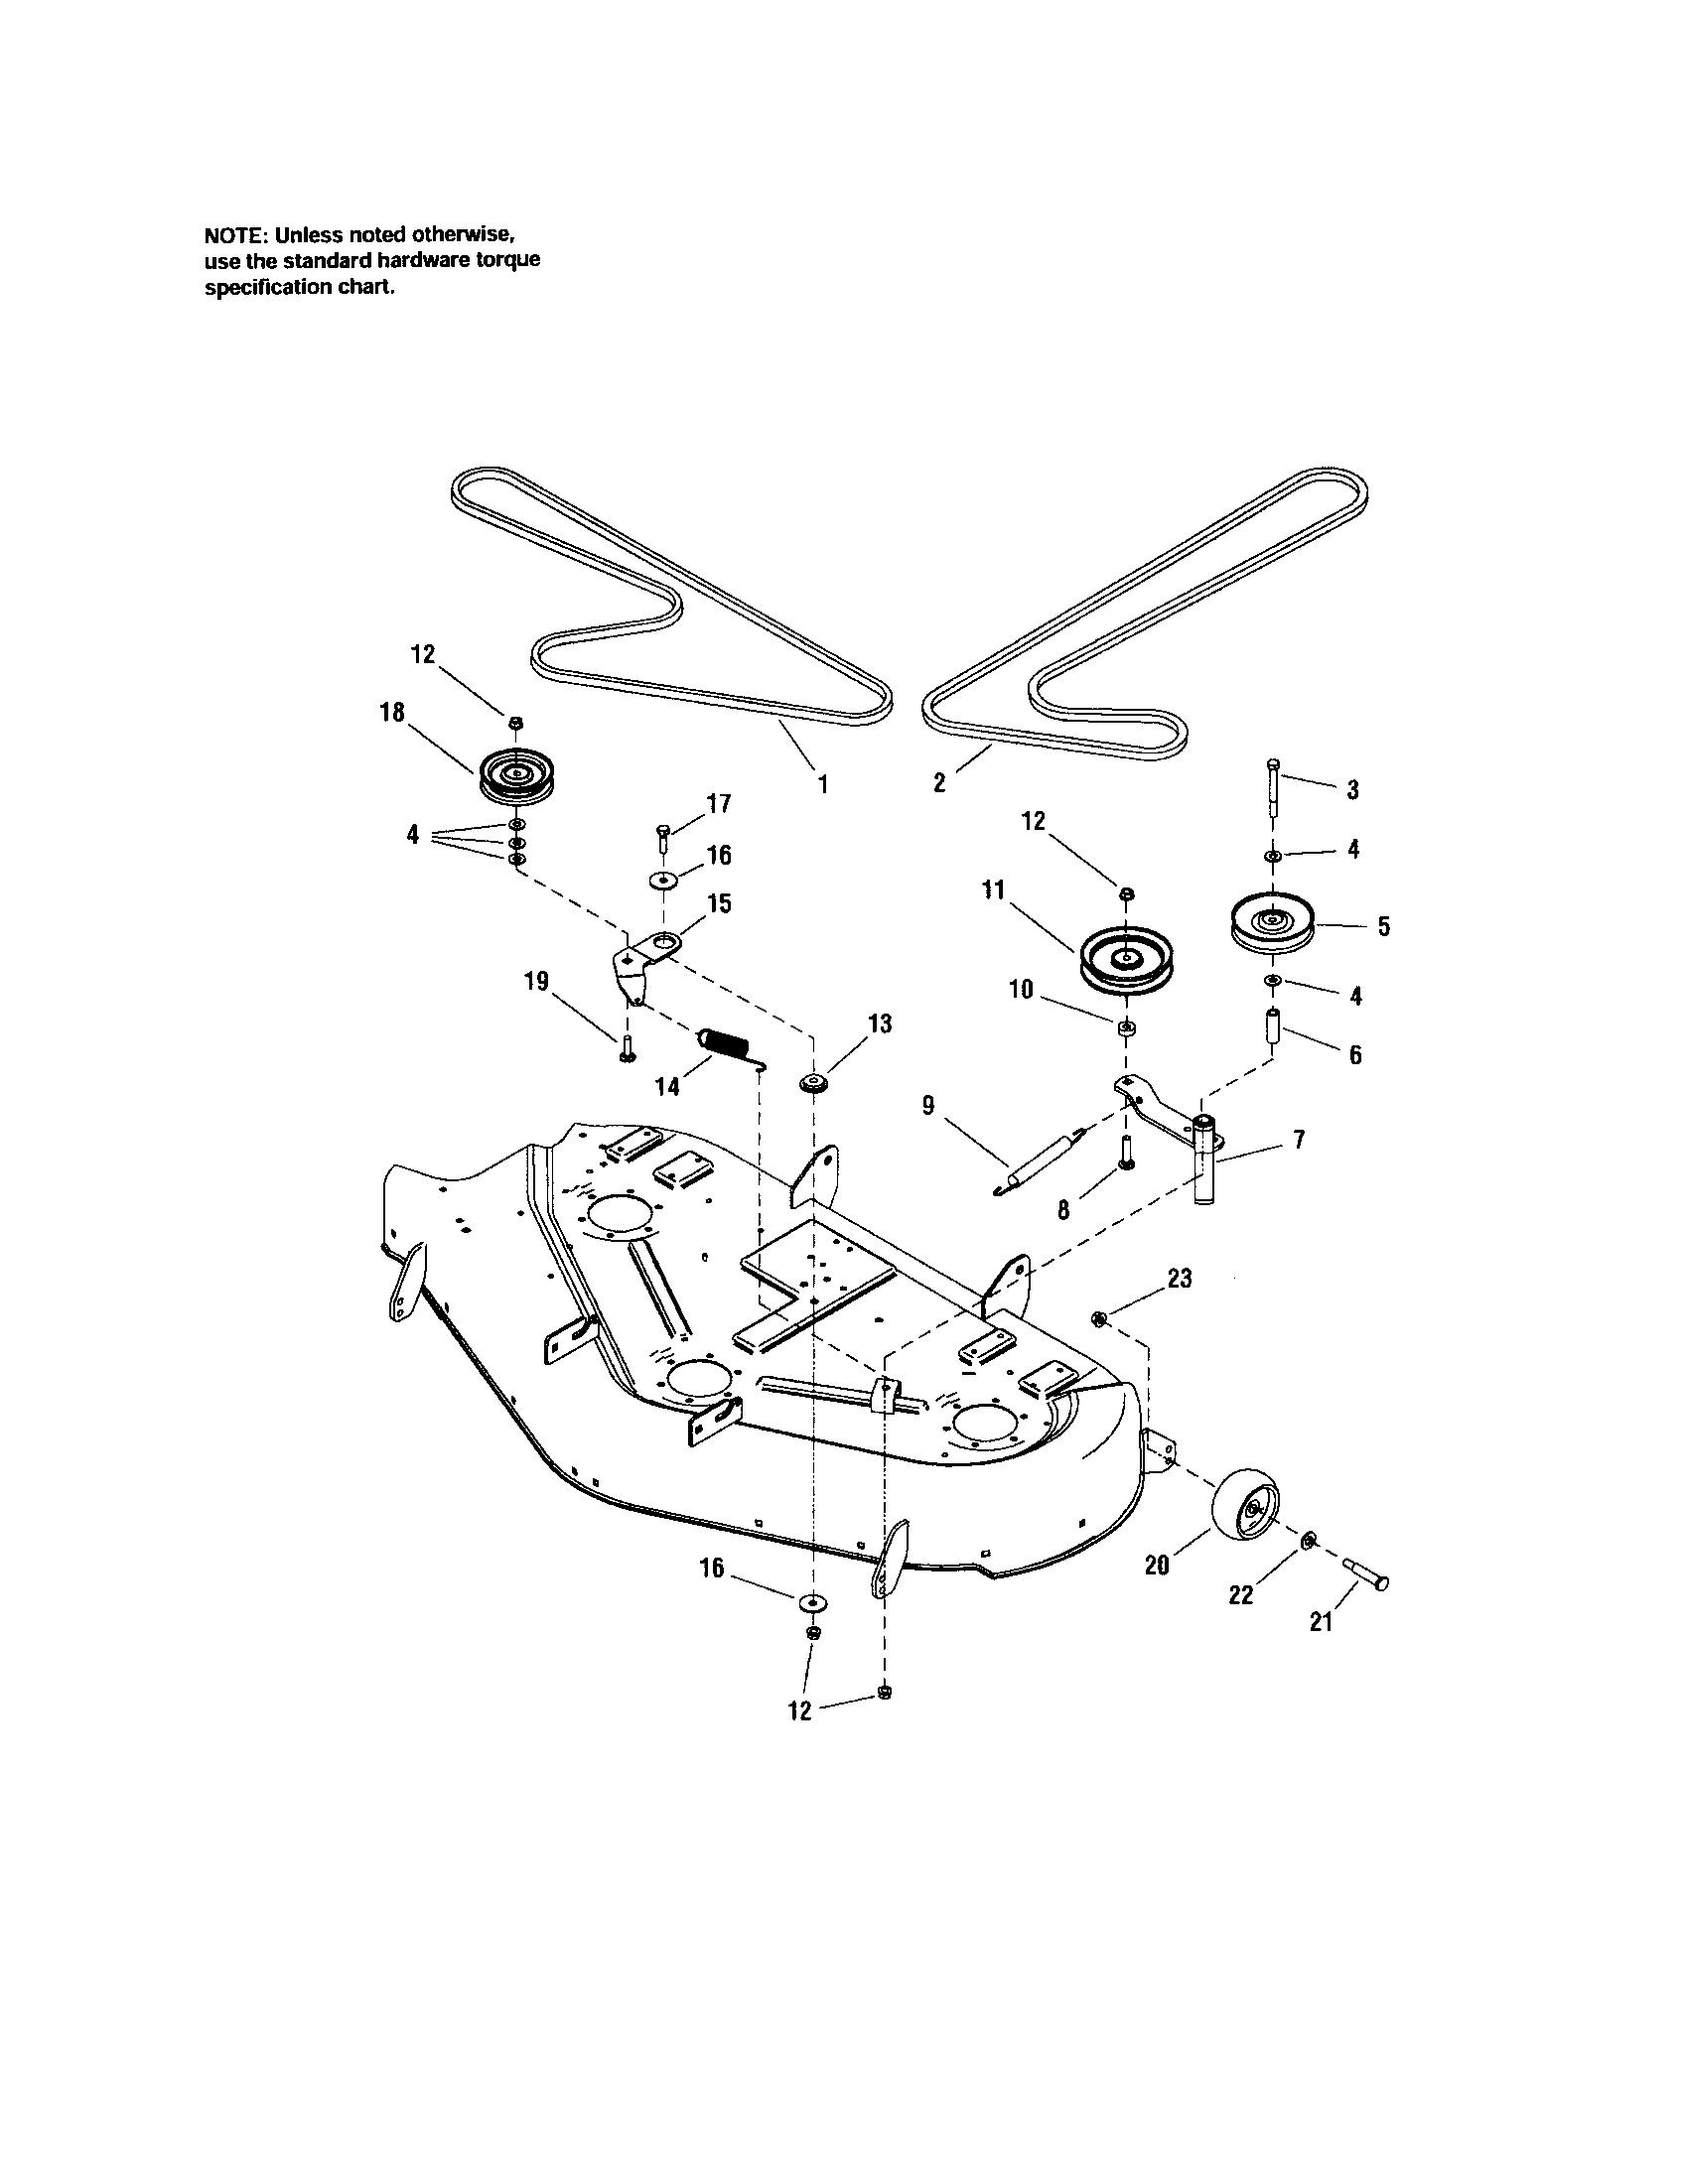 Craftsman model 10728791 lawn riding mower rear engine genuine parts rh searspartsdirect kohler engine wiring harness diagram wiring diagram craftsman